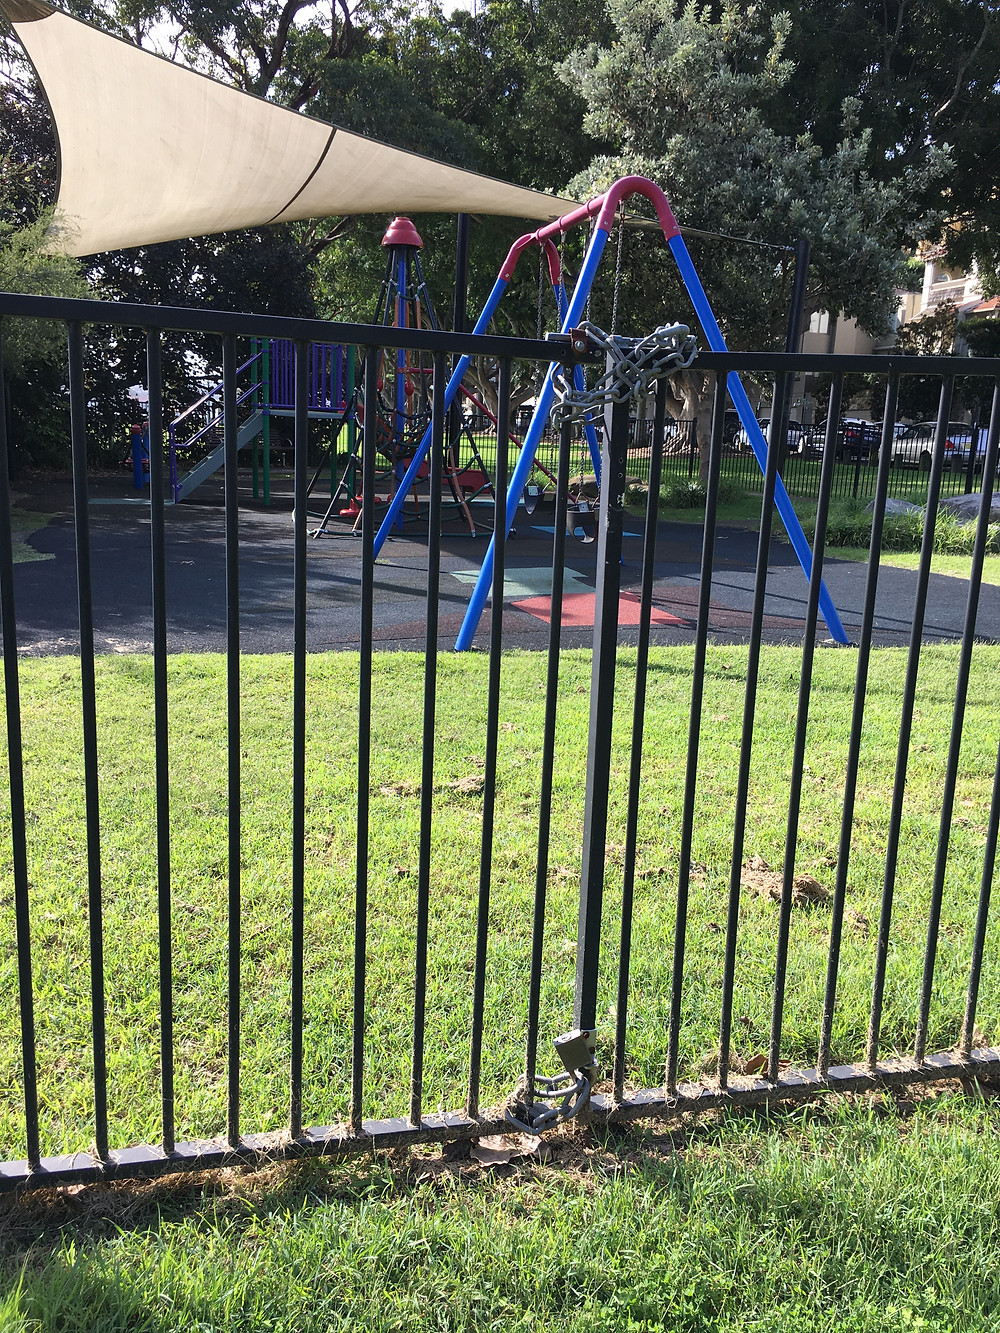 Yarranabbe Park playground locked off due to Covid-19 restrictions